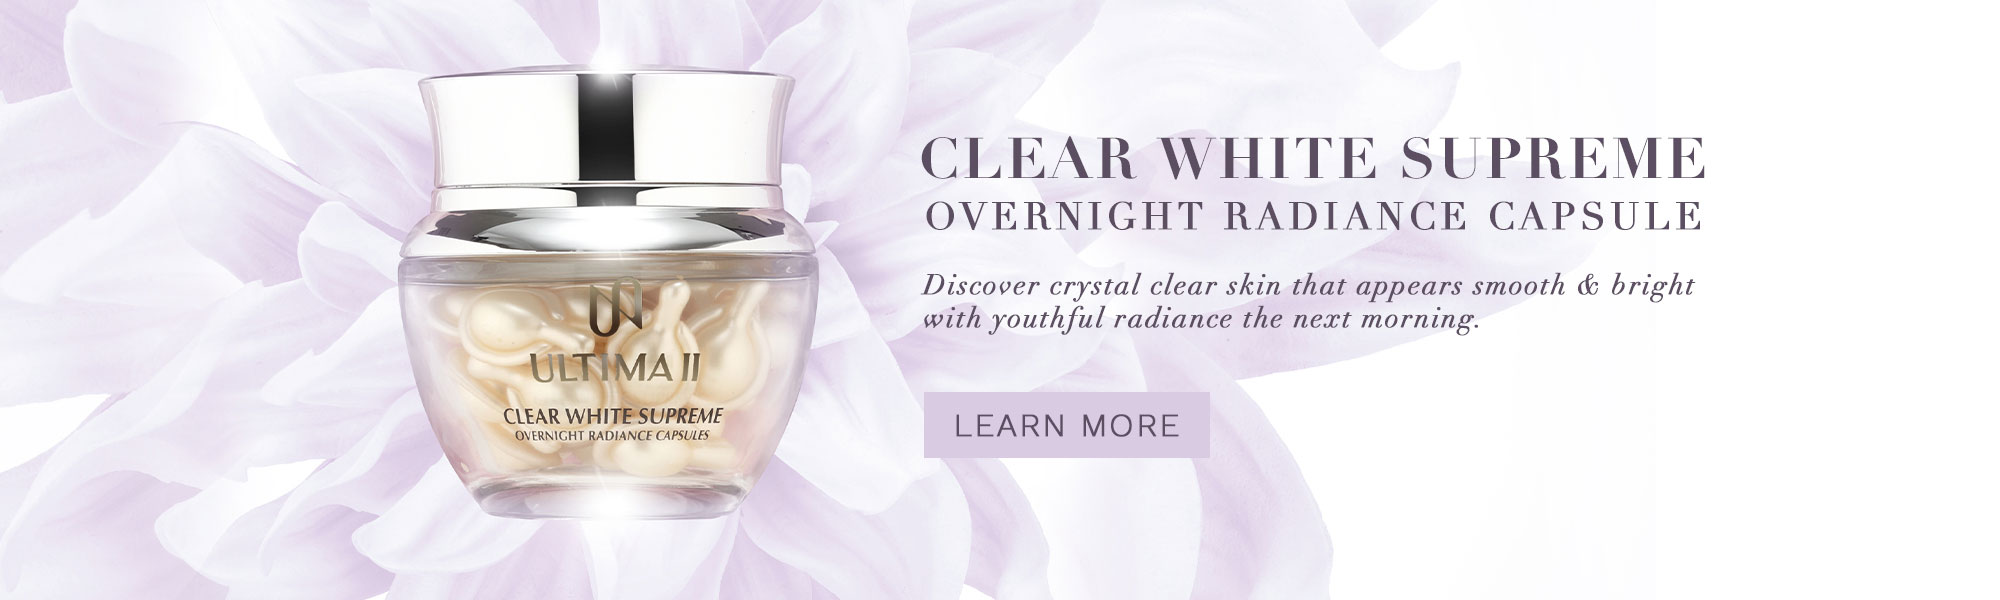 Clear White Supreme Overnight Radiance Capsule